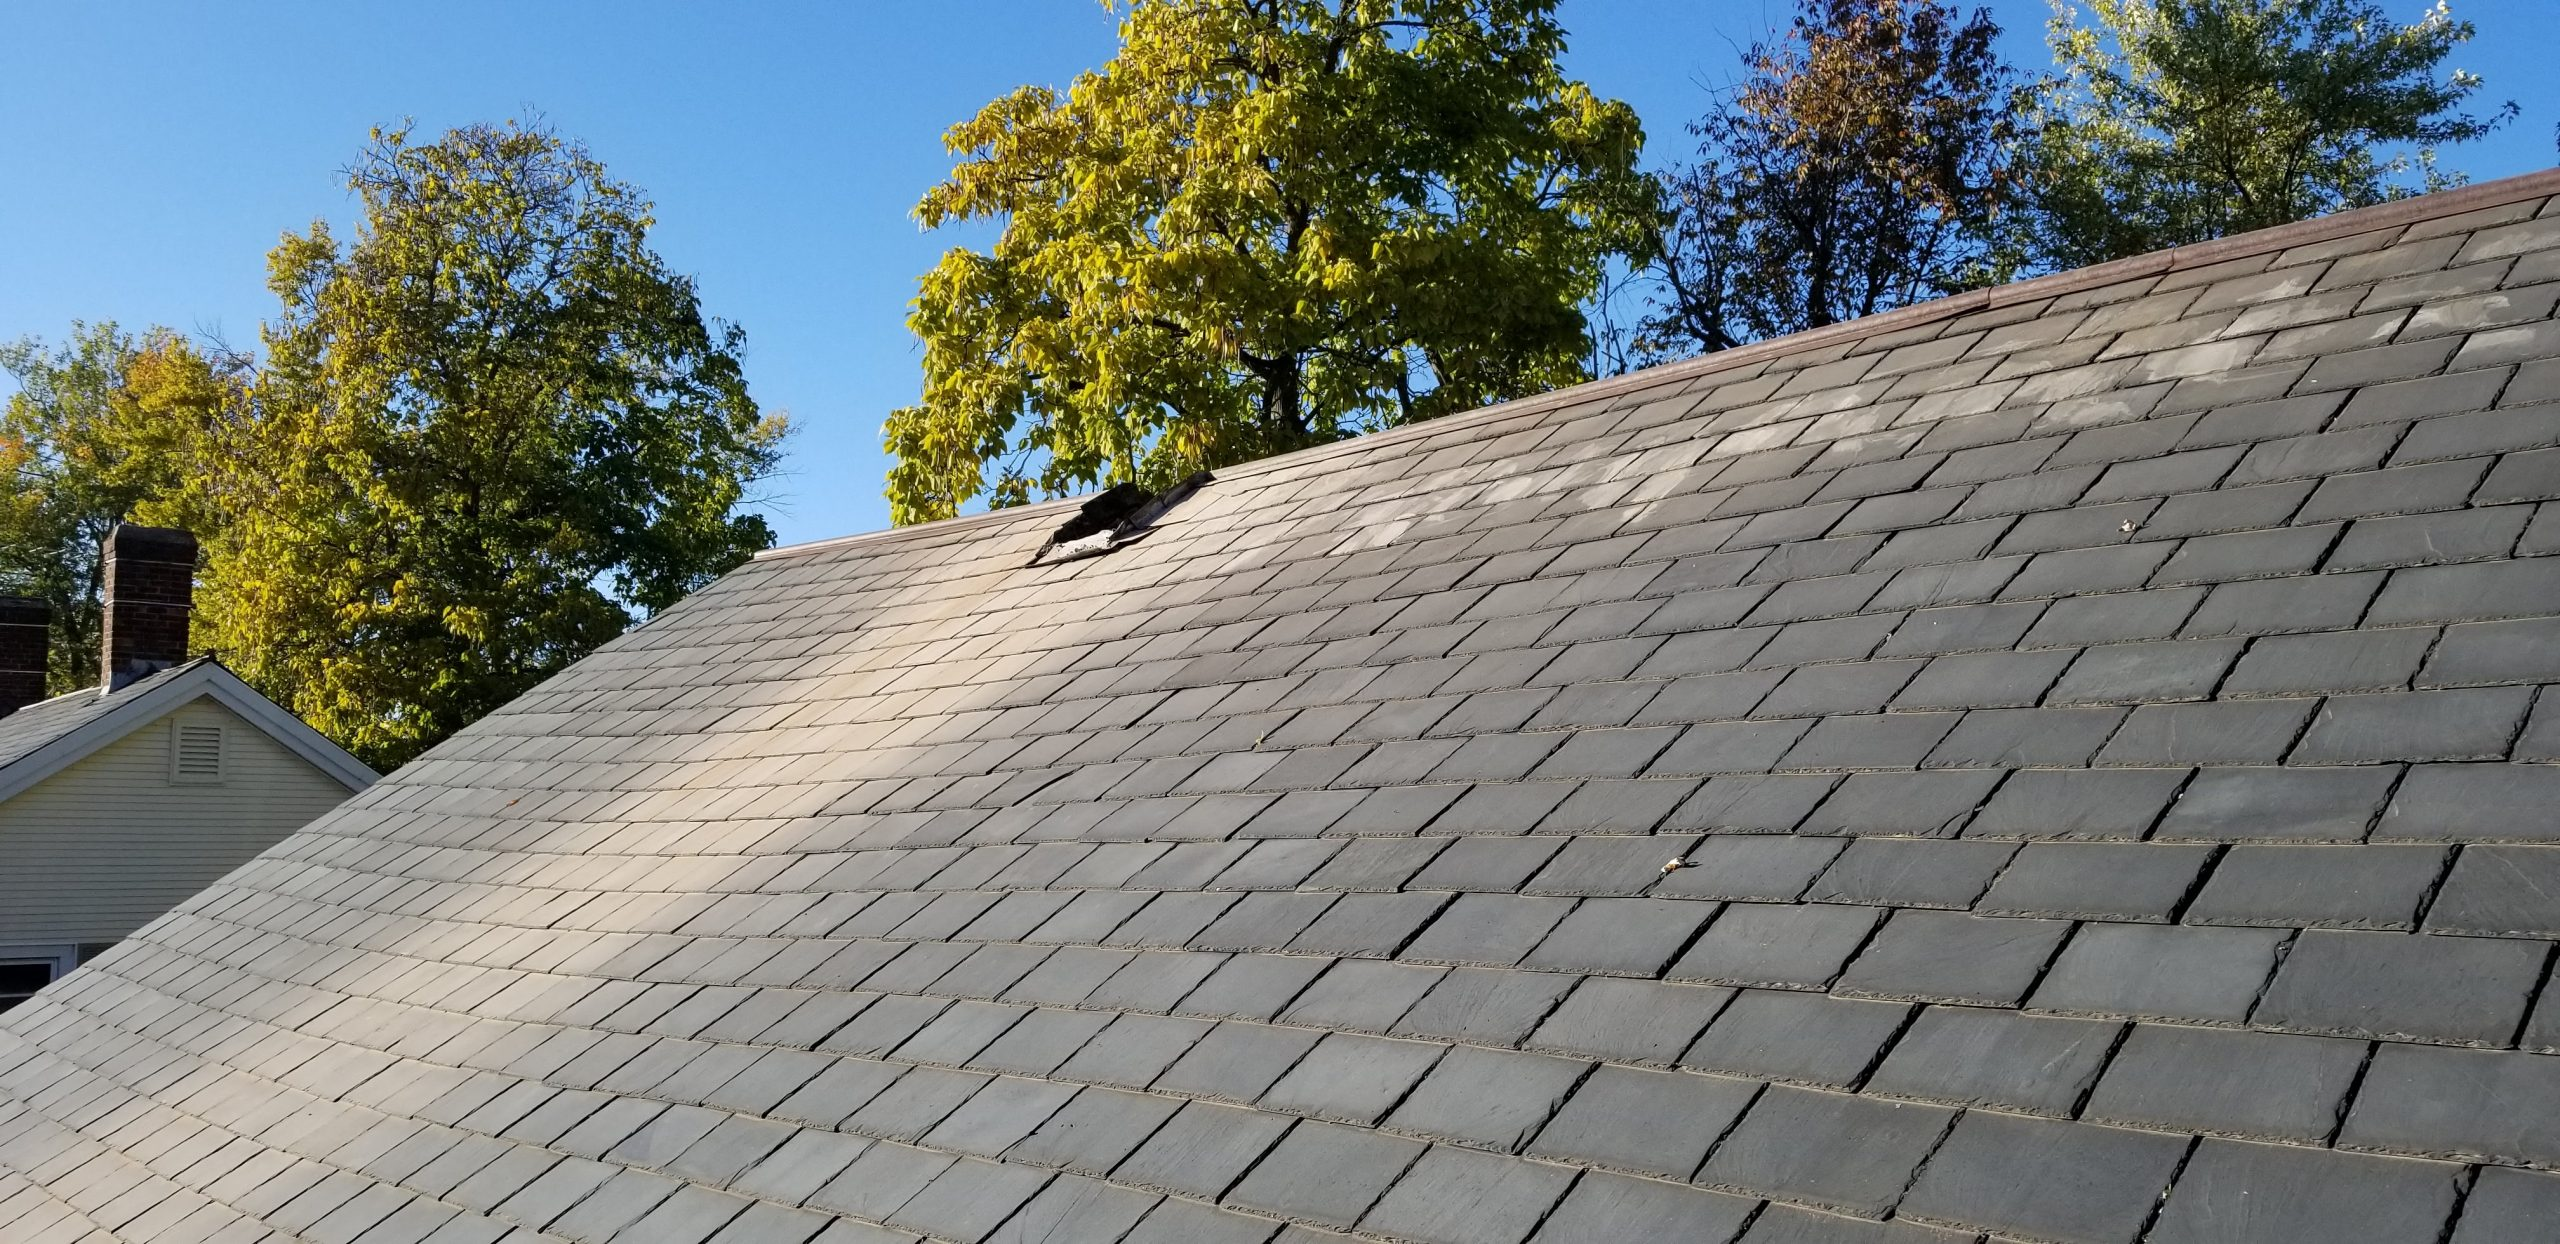 Repairs – Alliance Roofing and Fencing of Massachusetts